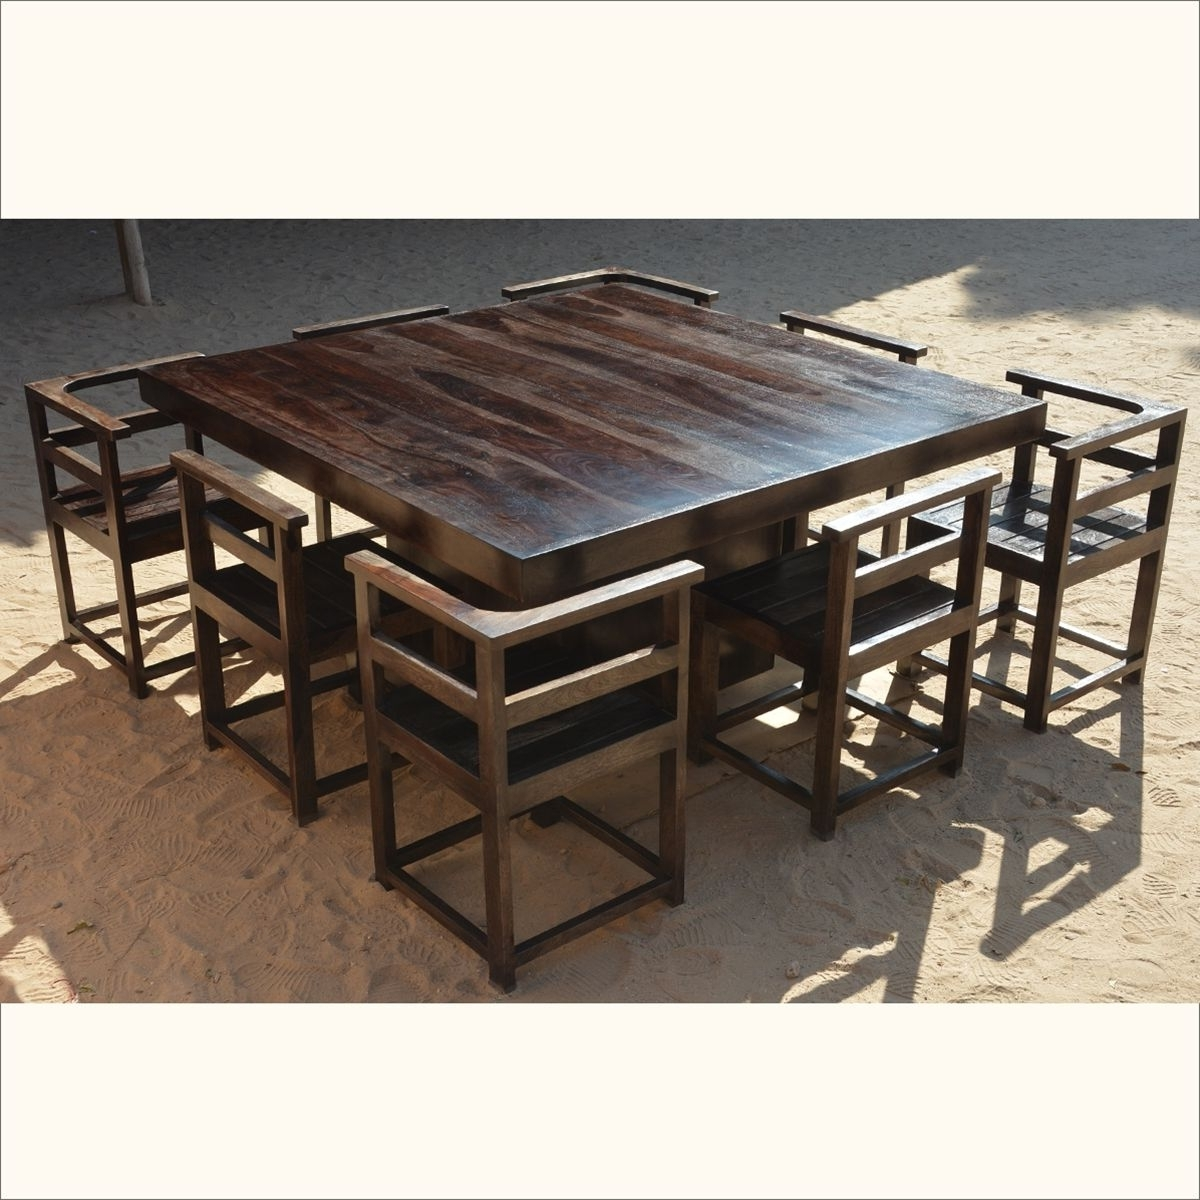 """Dining Tables For 8 With Most Up To Date Modern Rustic Solid Wood 64"""" Square Pedestal Dining Table & 8 Chairs (View 24 of 25)"""